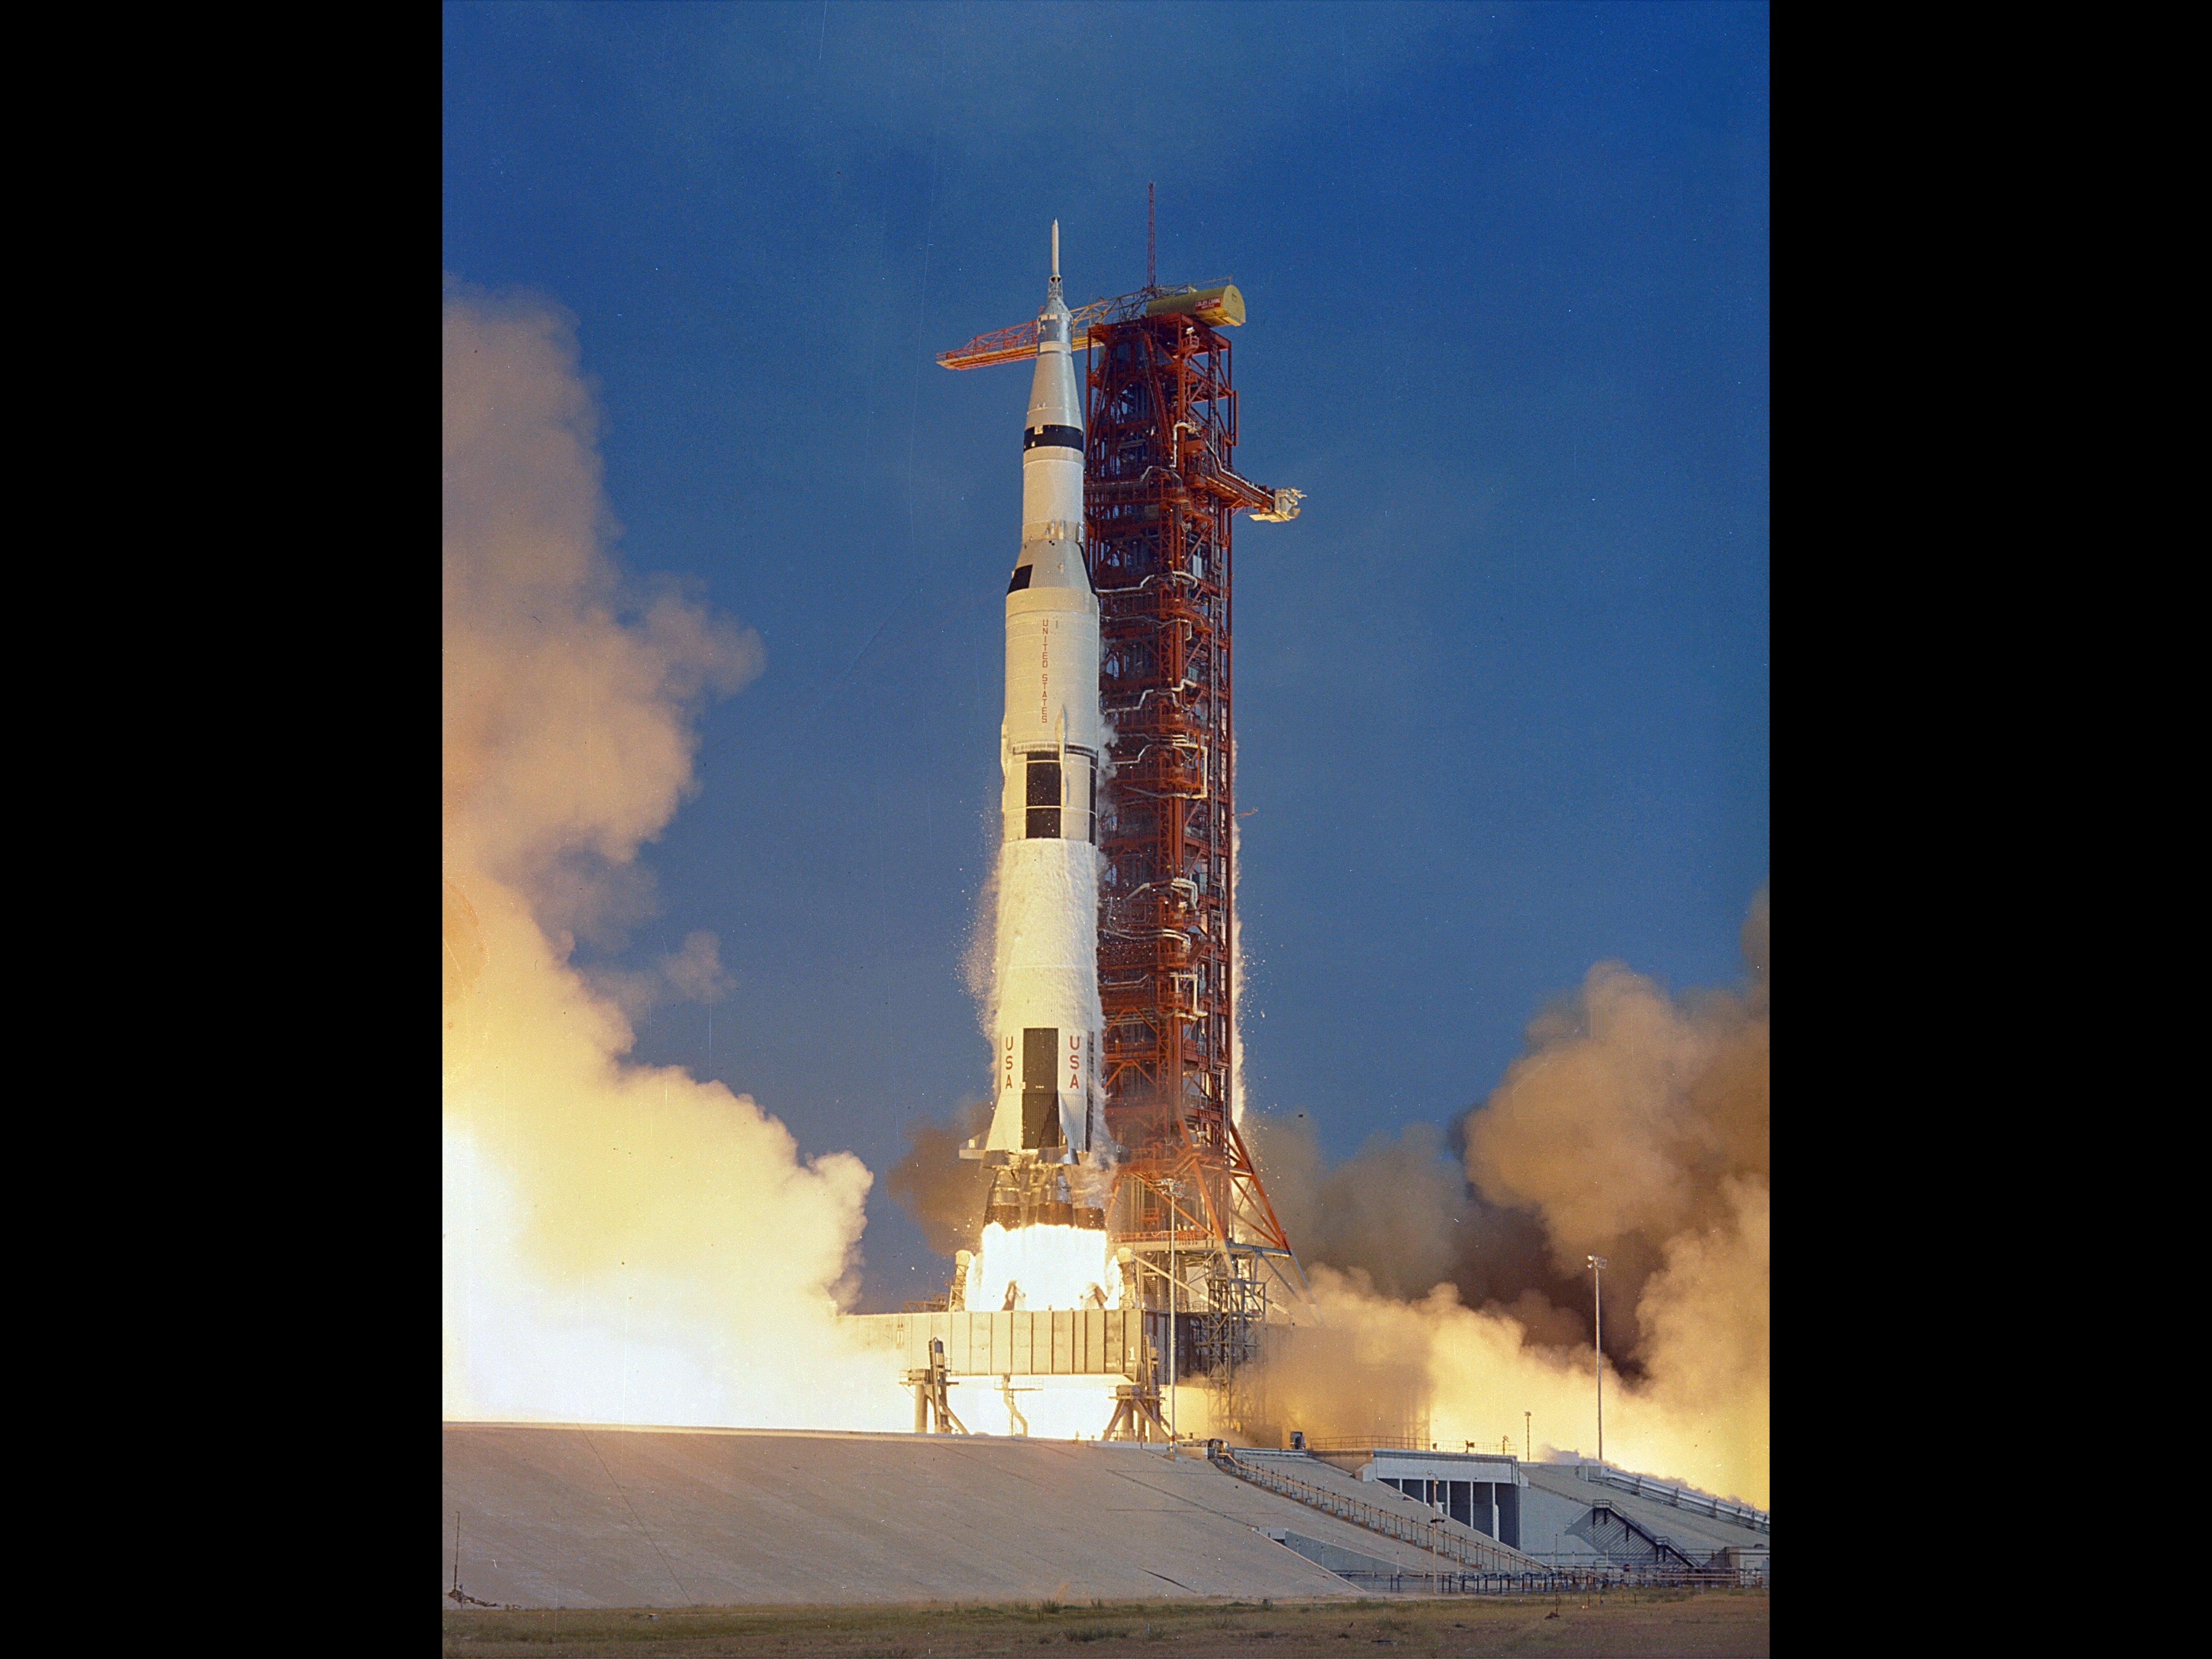 apollo 11 nasa moon - photo #41